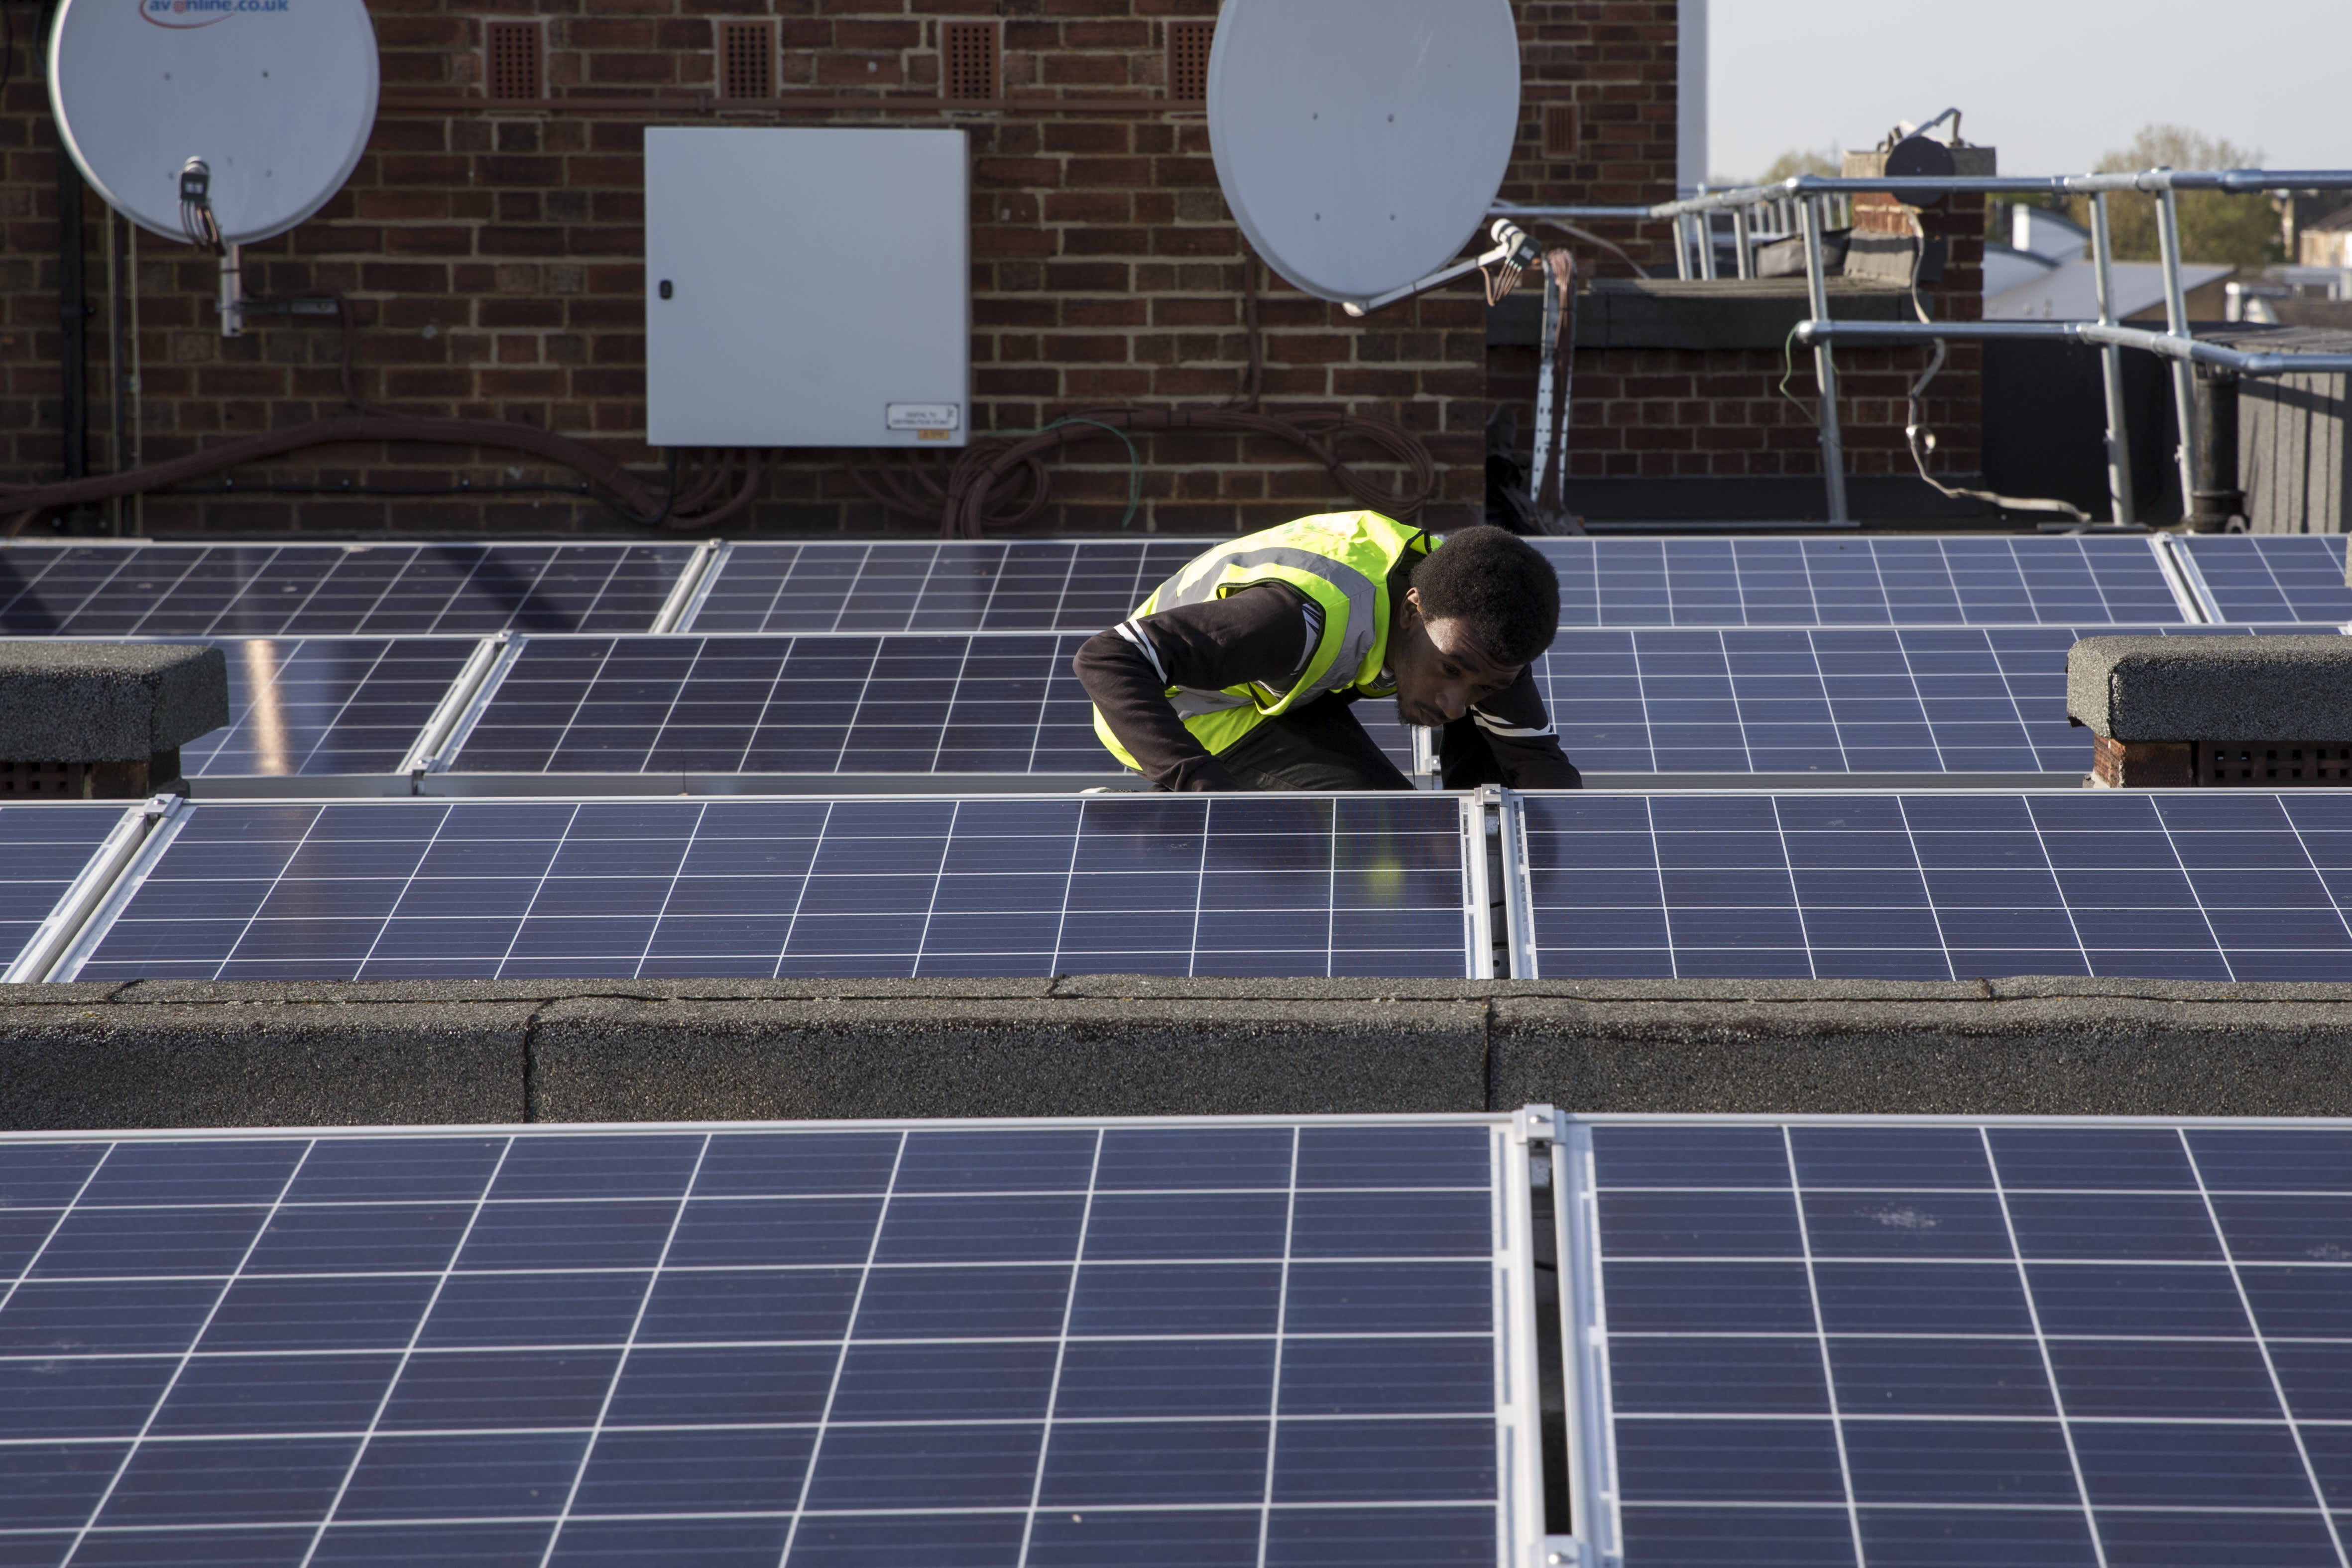 Londoners are getting together to install solar panels on their apartment blocks